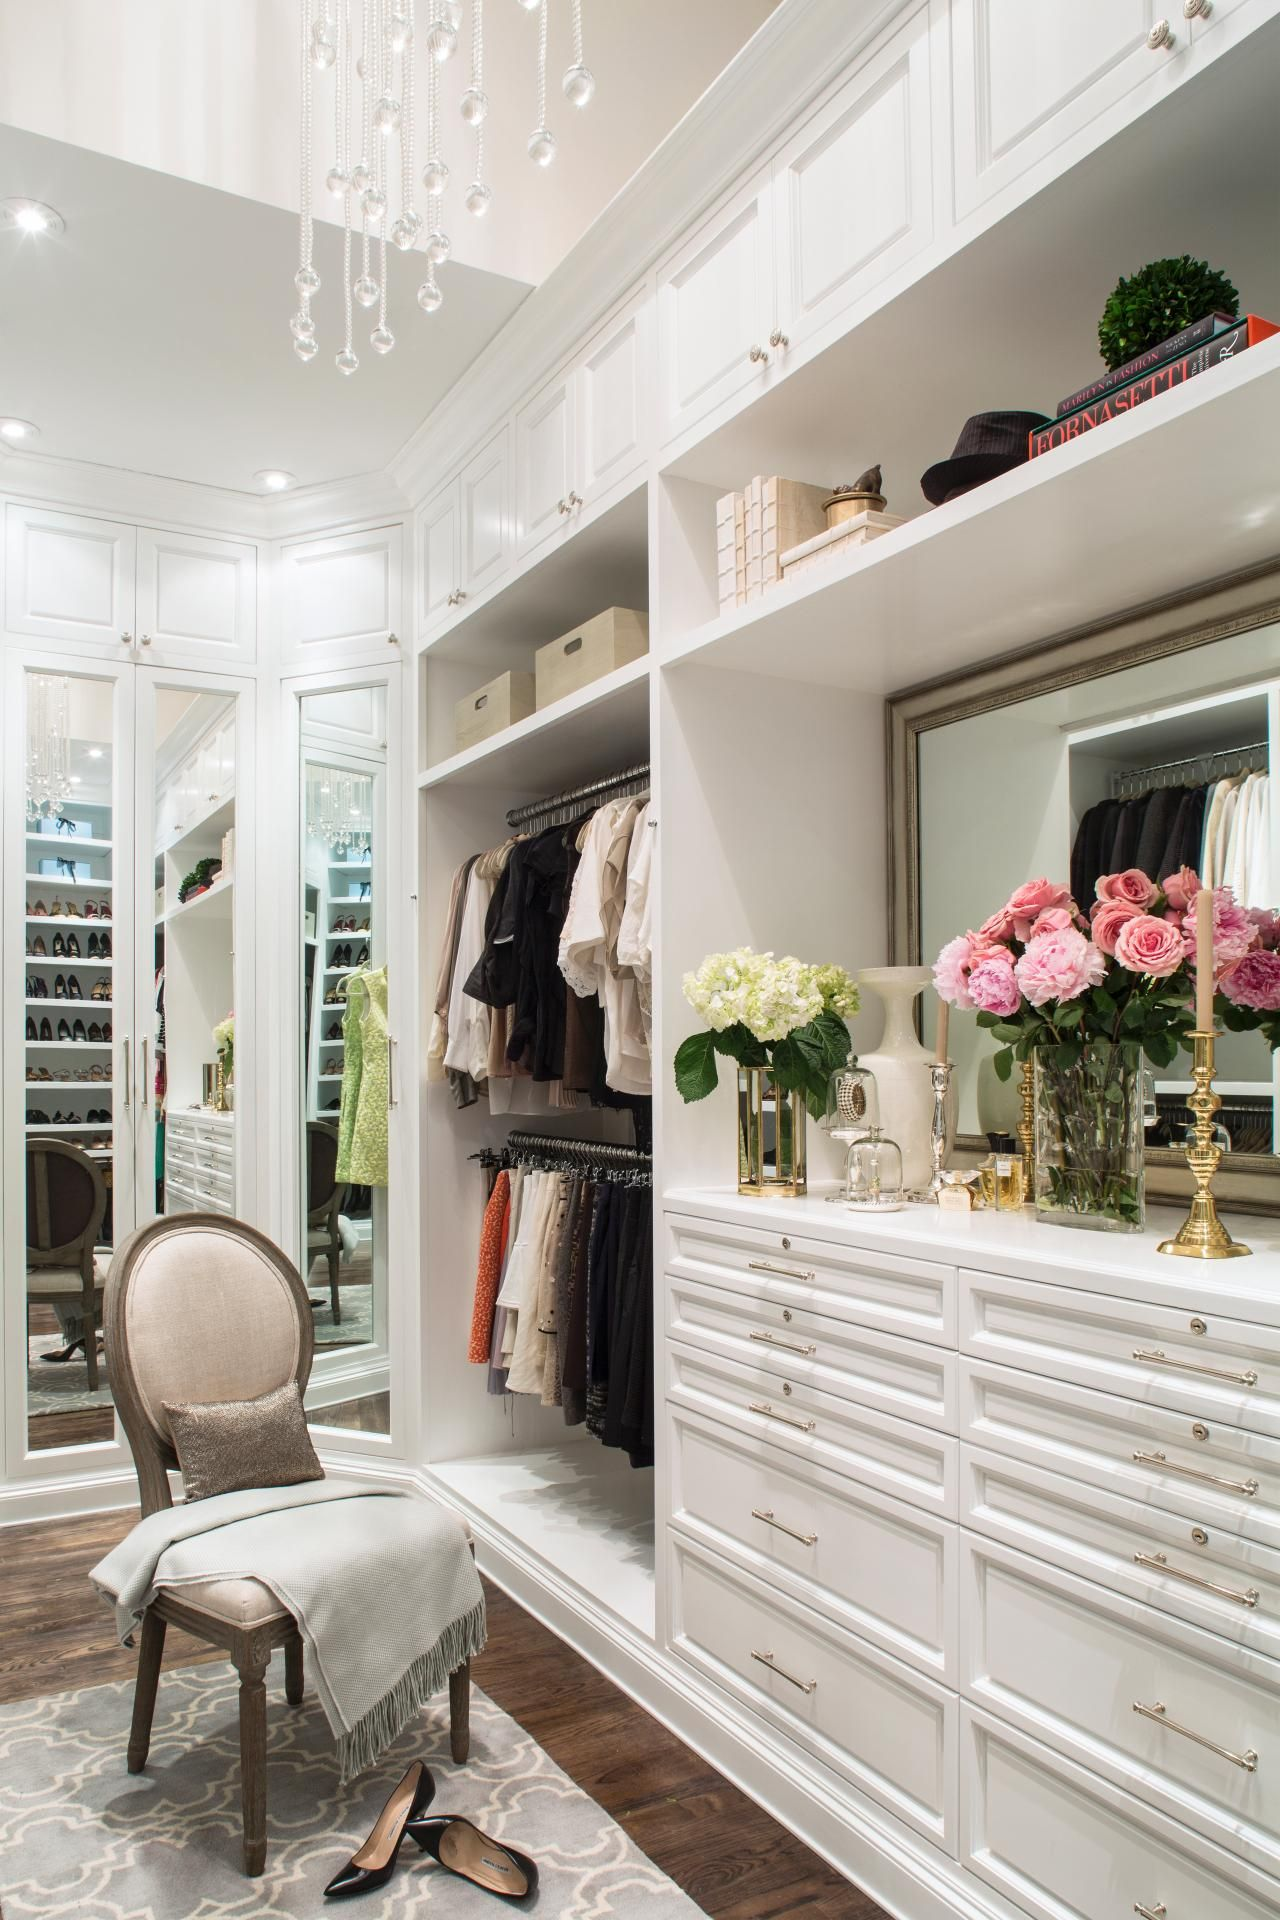 Living Room Closet Design Interesting A Demure Louis Xivstyle Chair Provides A Perfect Perch For Design Inspiration